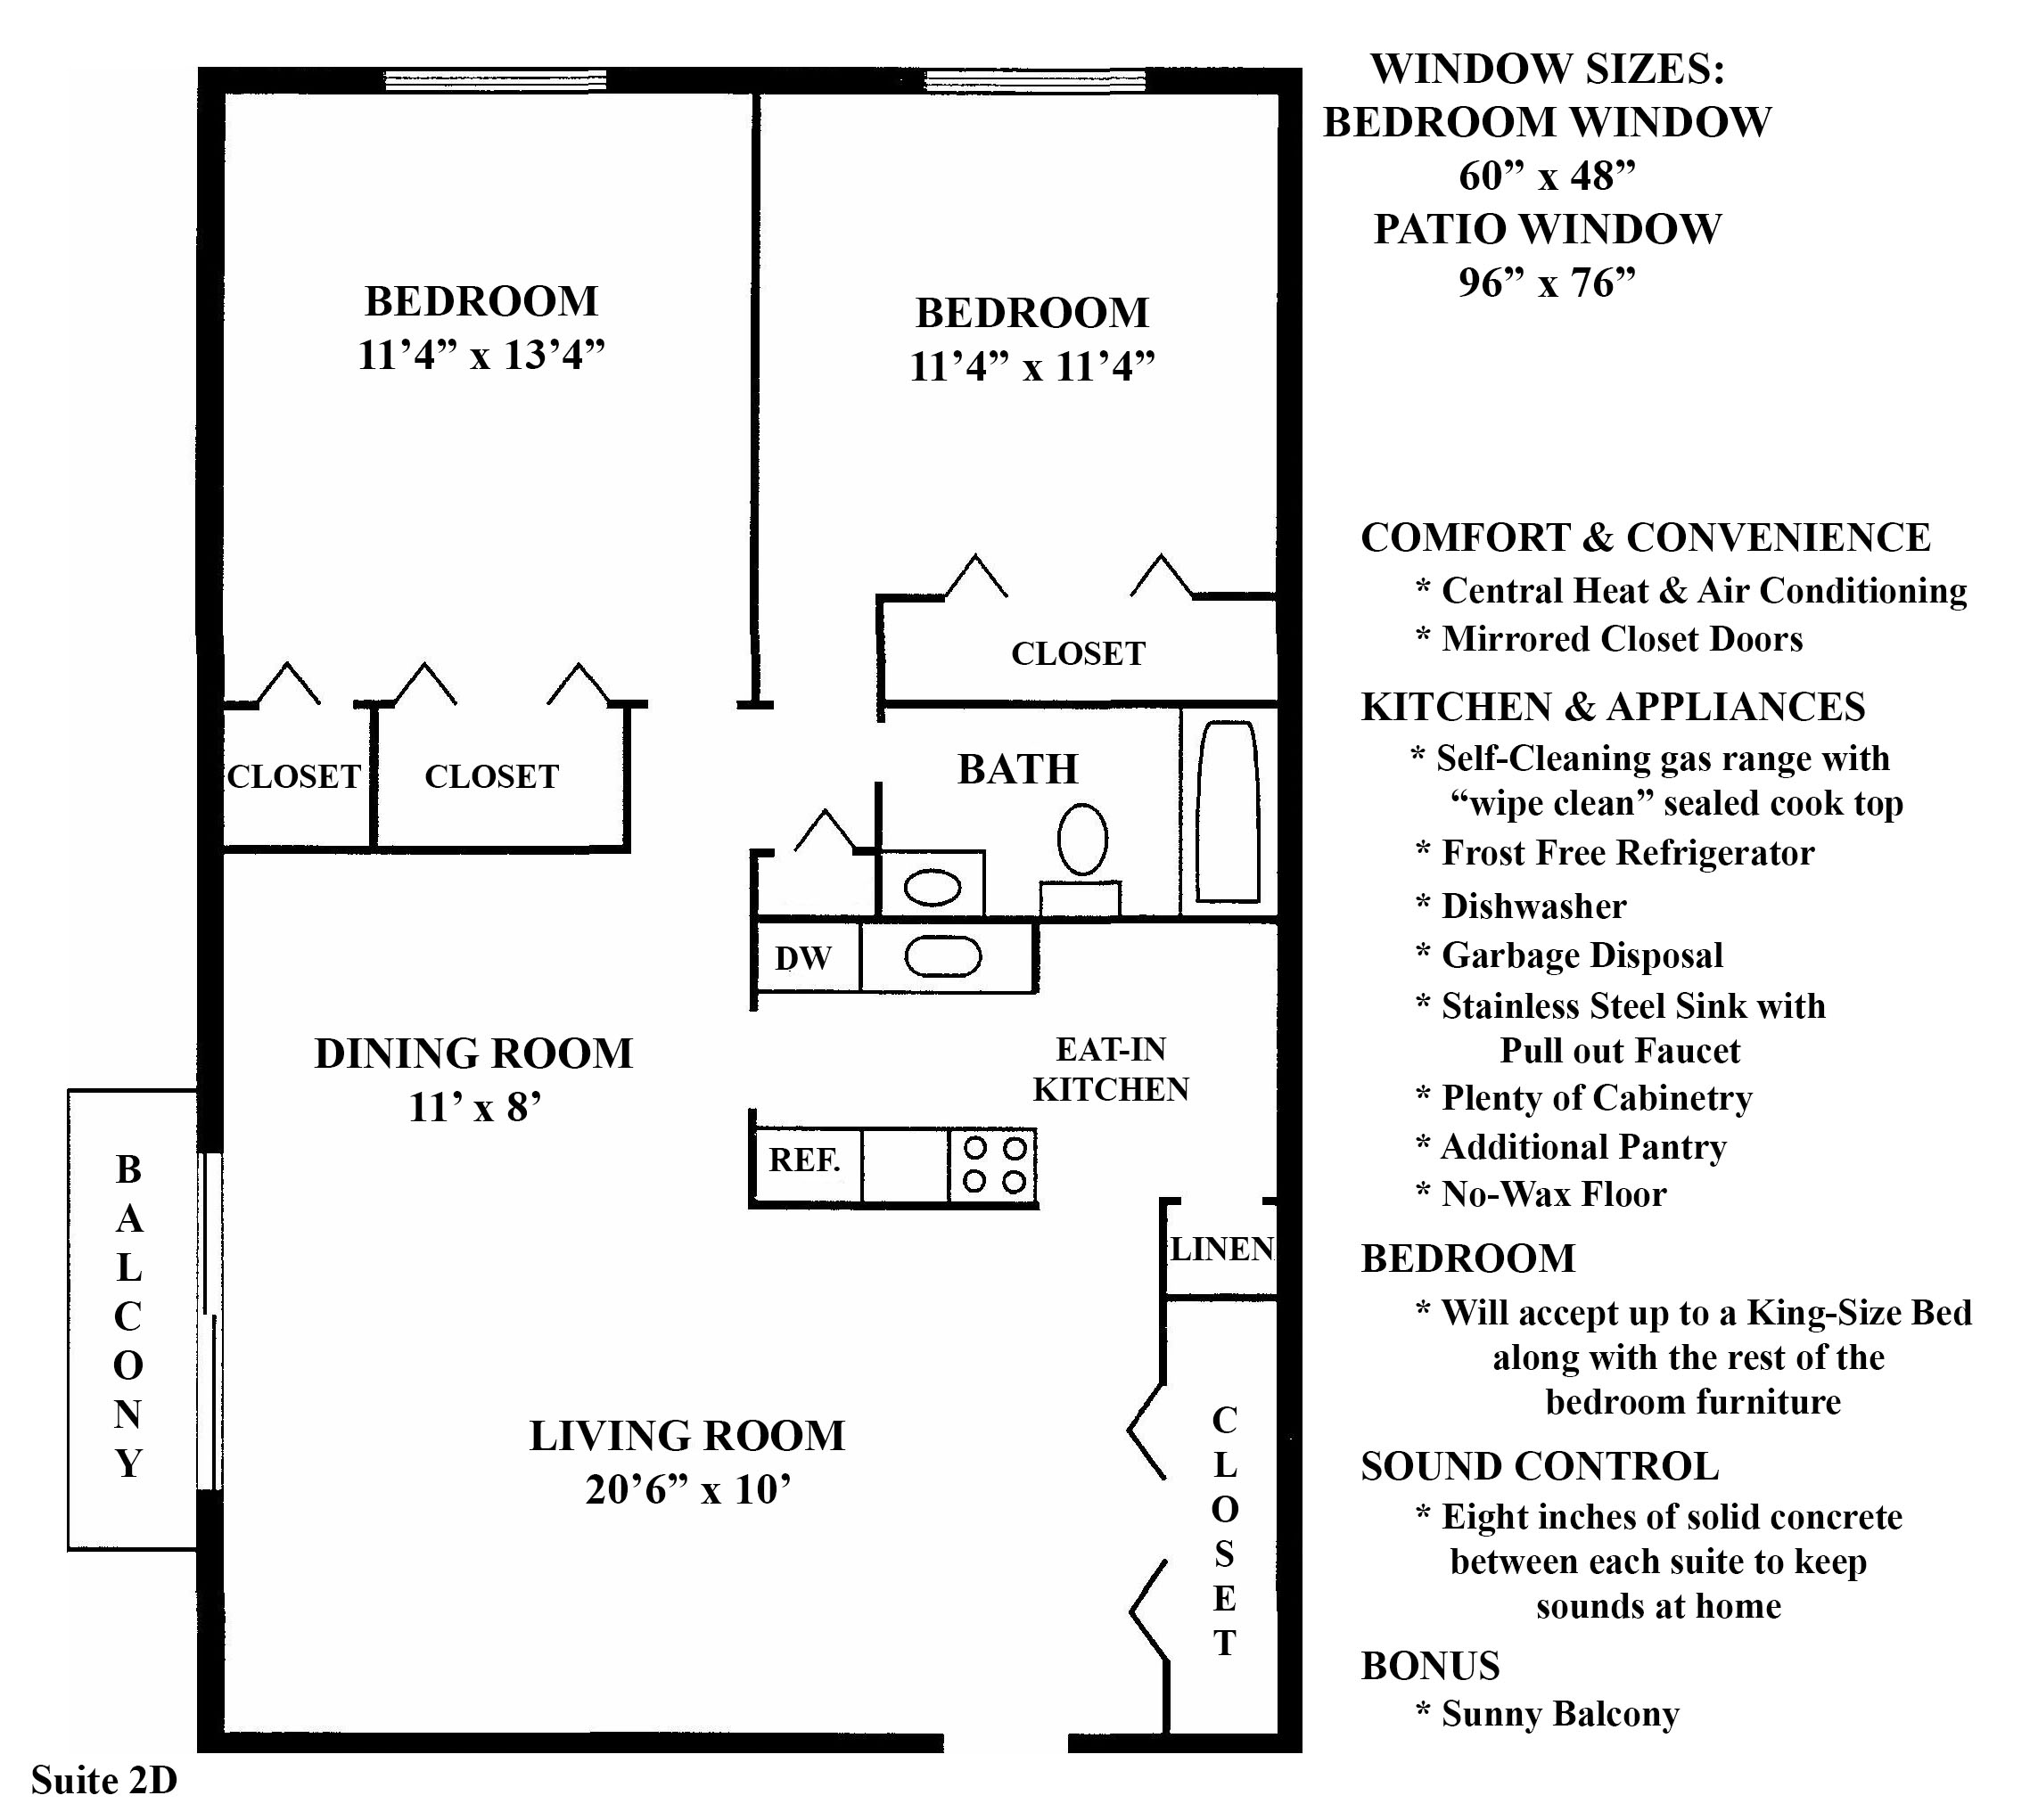 Greenridge on Euclid - Floorplan - 2D (2 Bedroom 1 Bath)